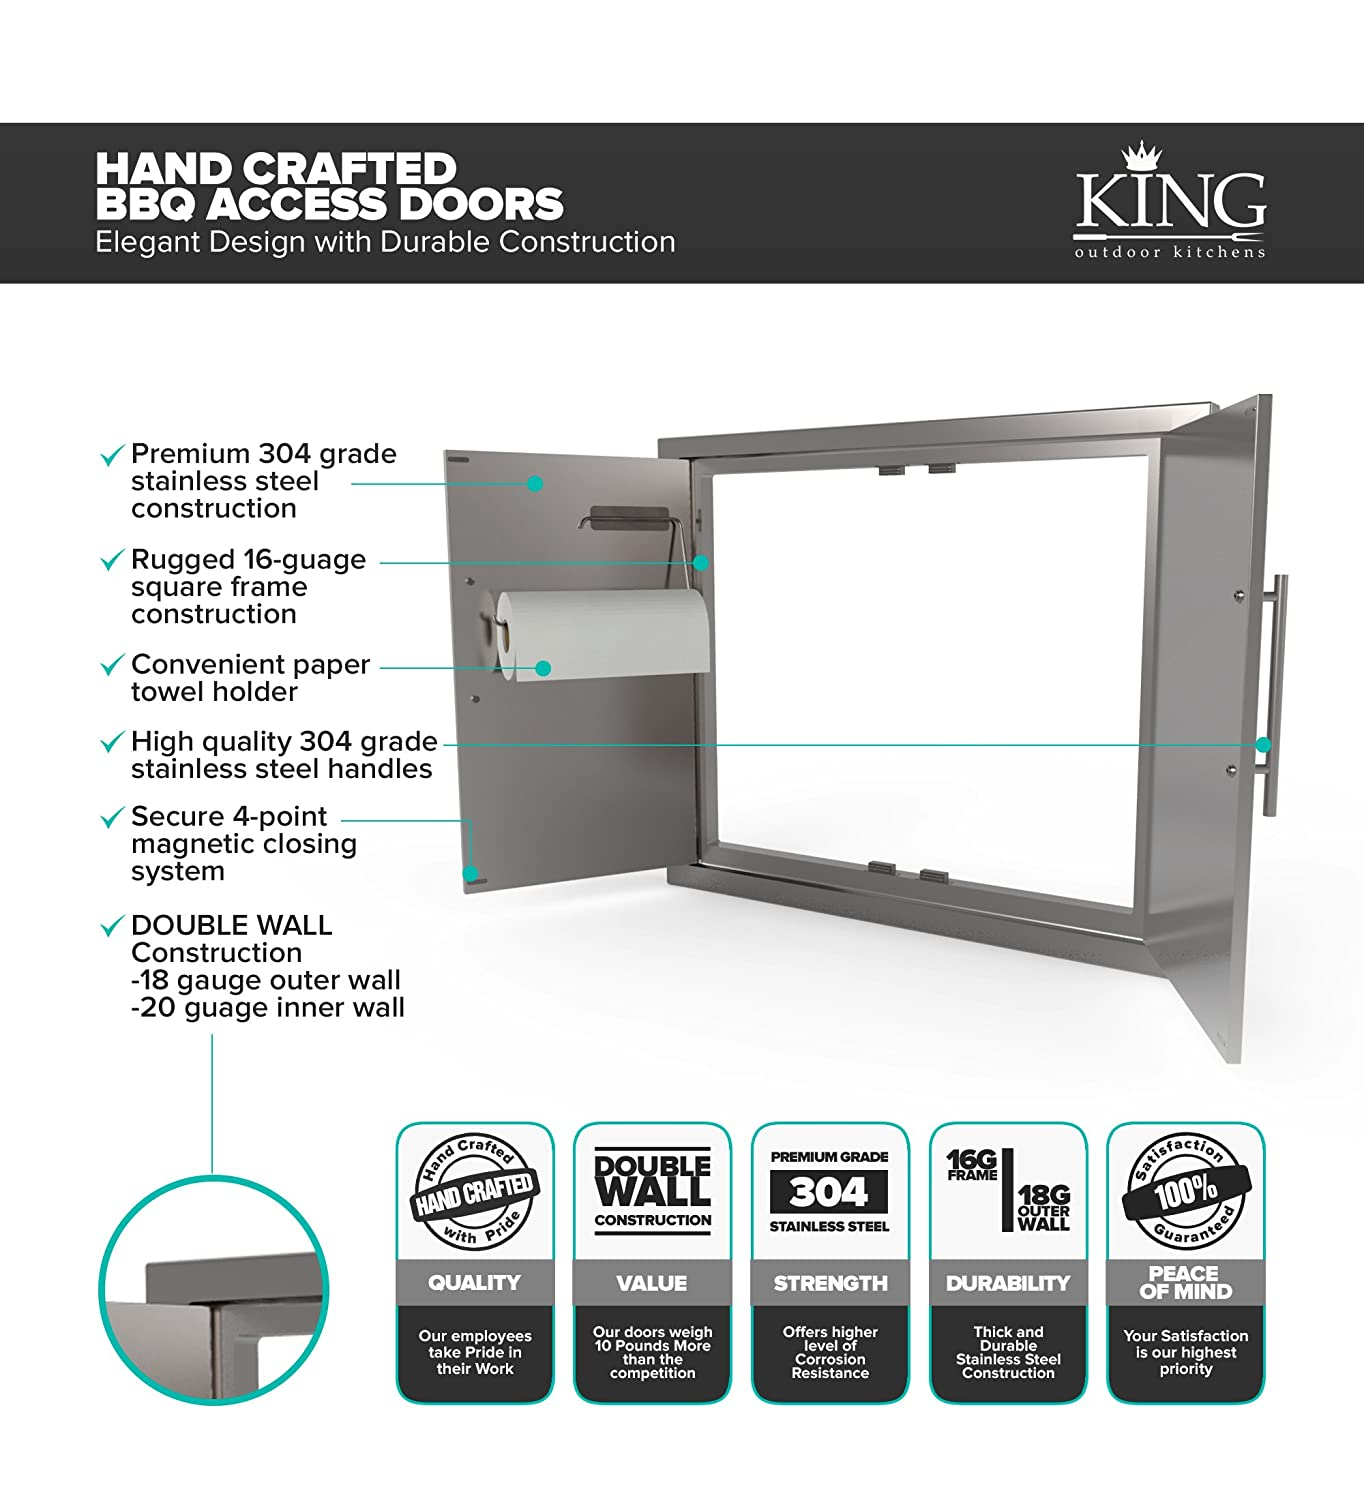 Amazon.com  BBQ ACCESS DOOR/ELEGANT NEW STYLE* 31 Inch 304 Grade Stainless/ Steel Bbq Island/Outdoor Kitchen Access Doors Include Heavy Duty DOUBLE WALL ...  sc 1 st  Amazon.com & Amazon.com : BBQ ACCESS DOOR/ELEGANT NEW STYLE* 31 Inch 304 Grade ...